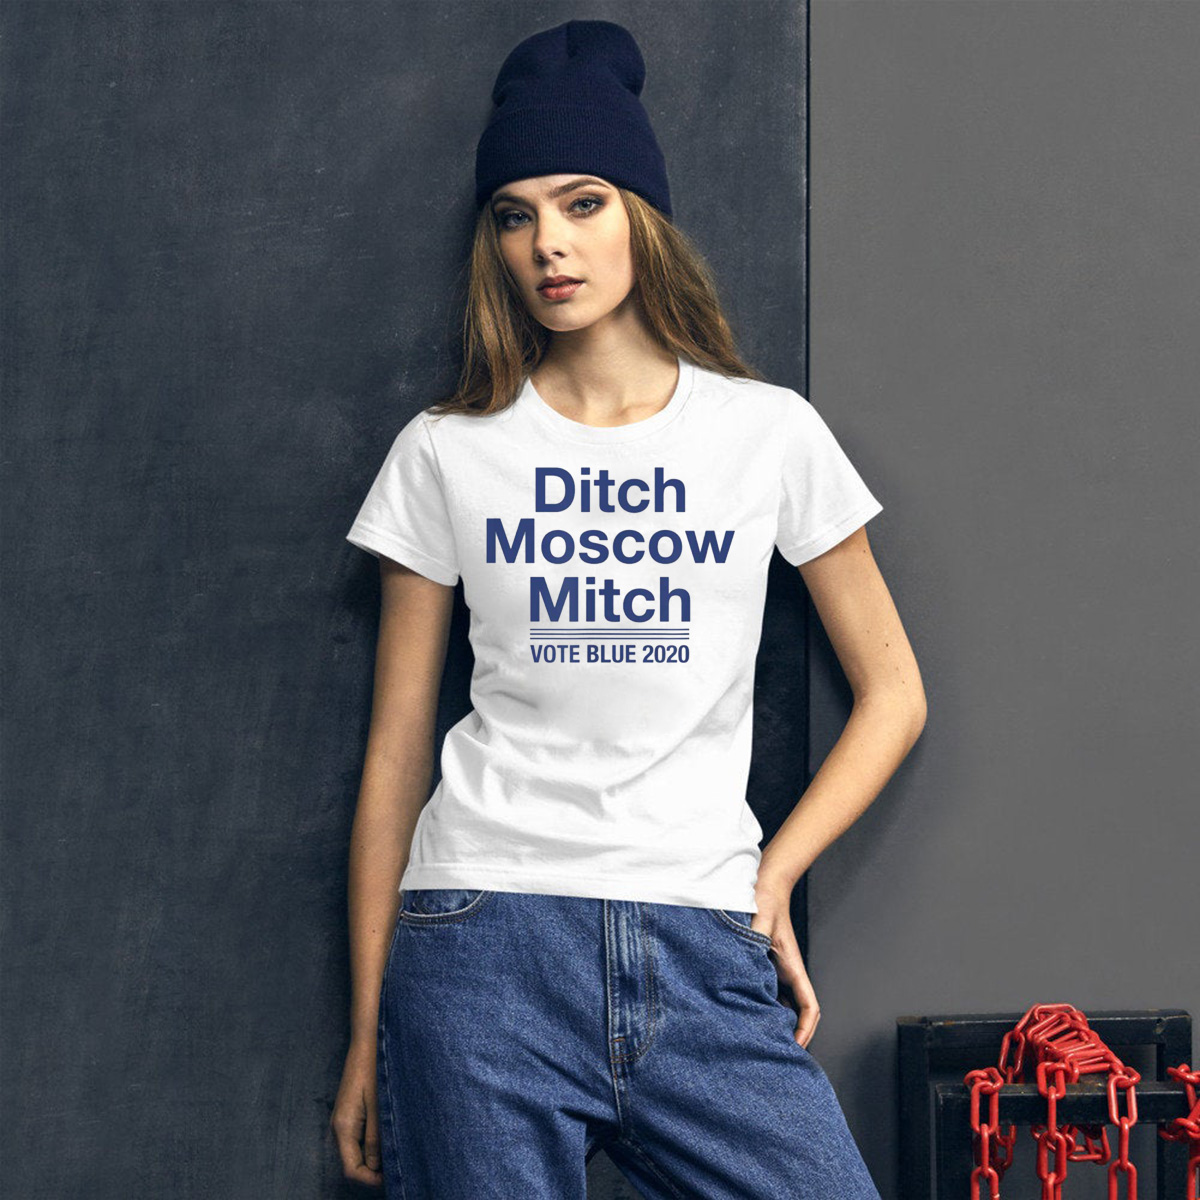 'Ditch Moscow Mitch', Resistance T-Shirt